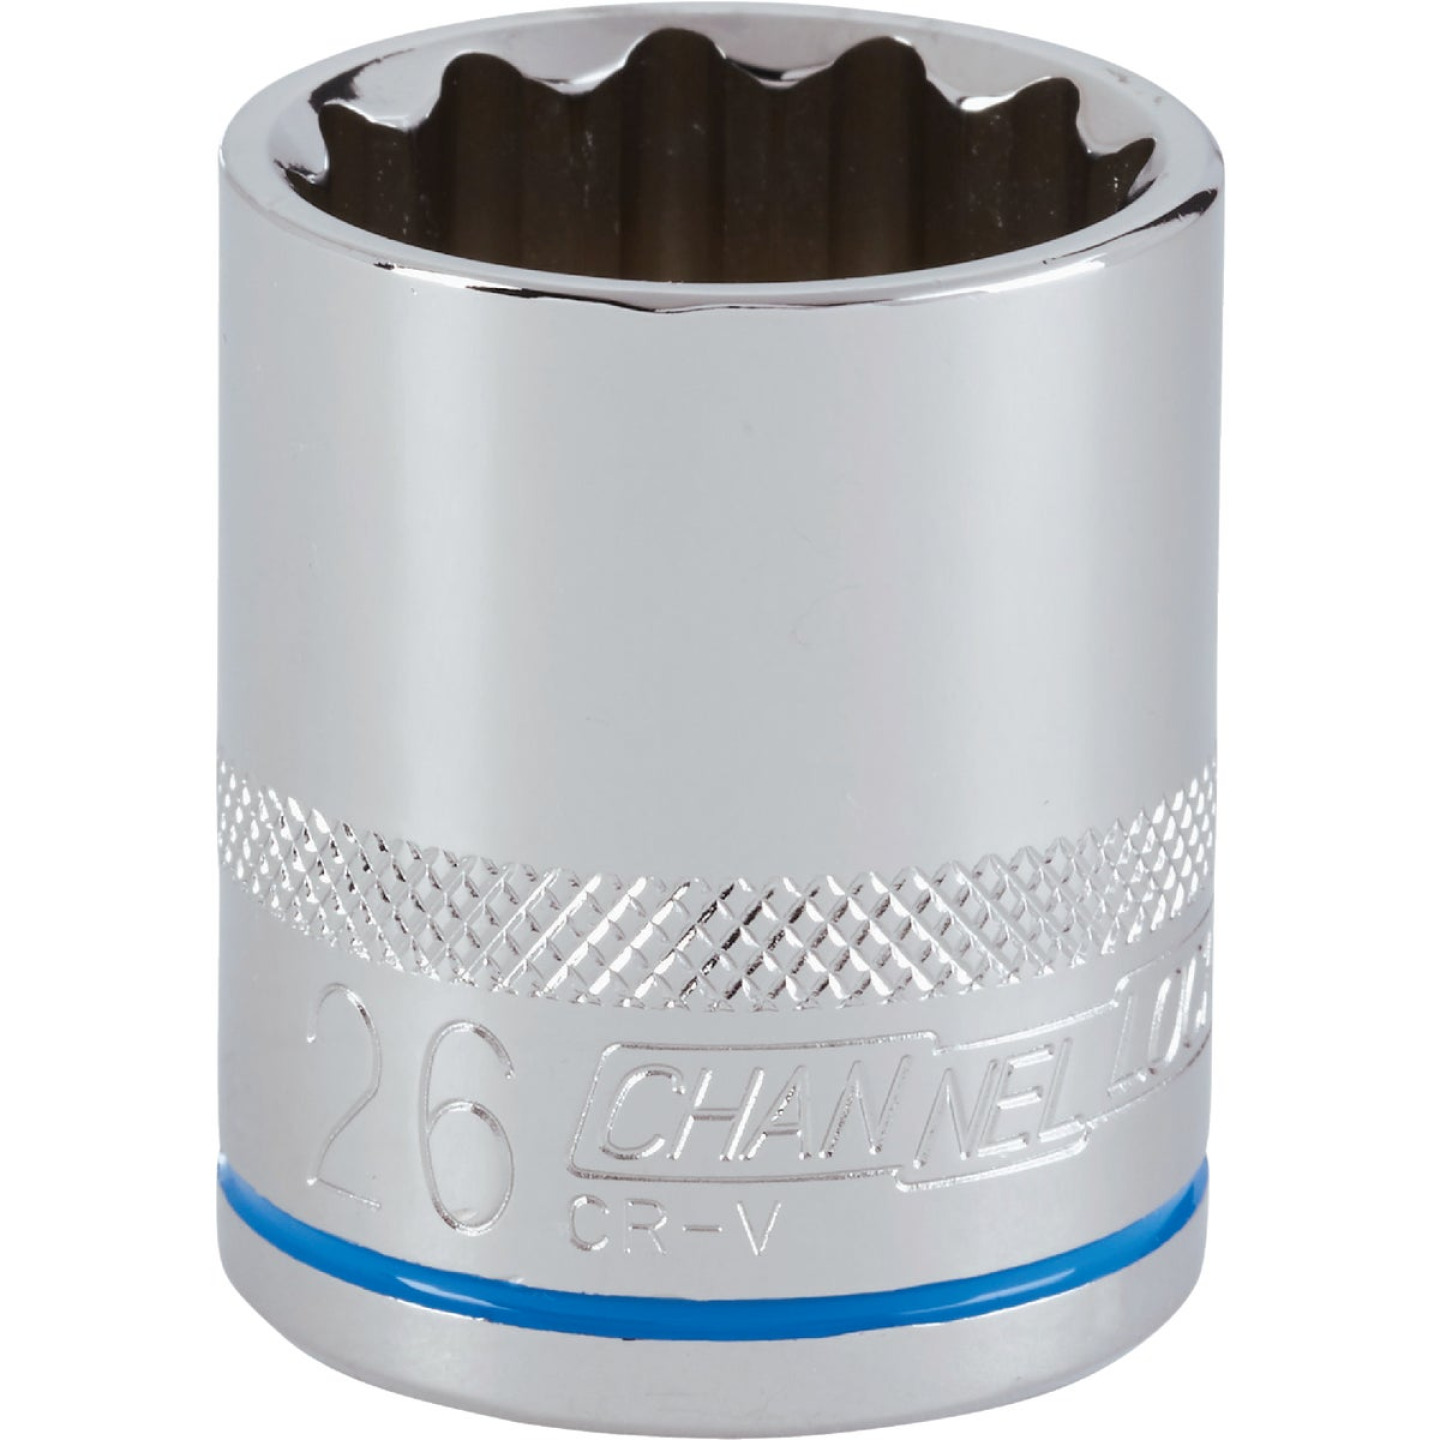 Channellock 1/2 In. Drive 26 mm 12-Point Shallow Metric Socket Image 1